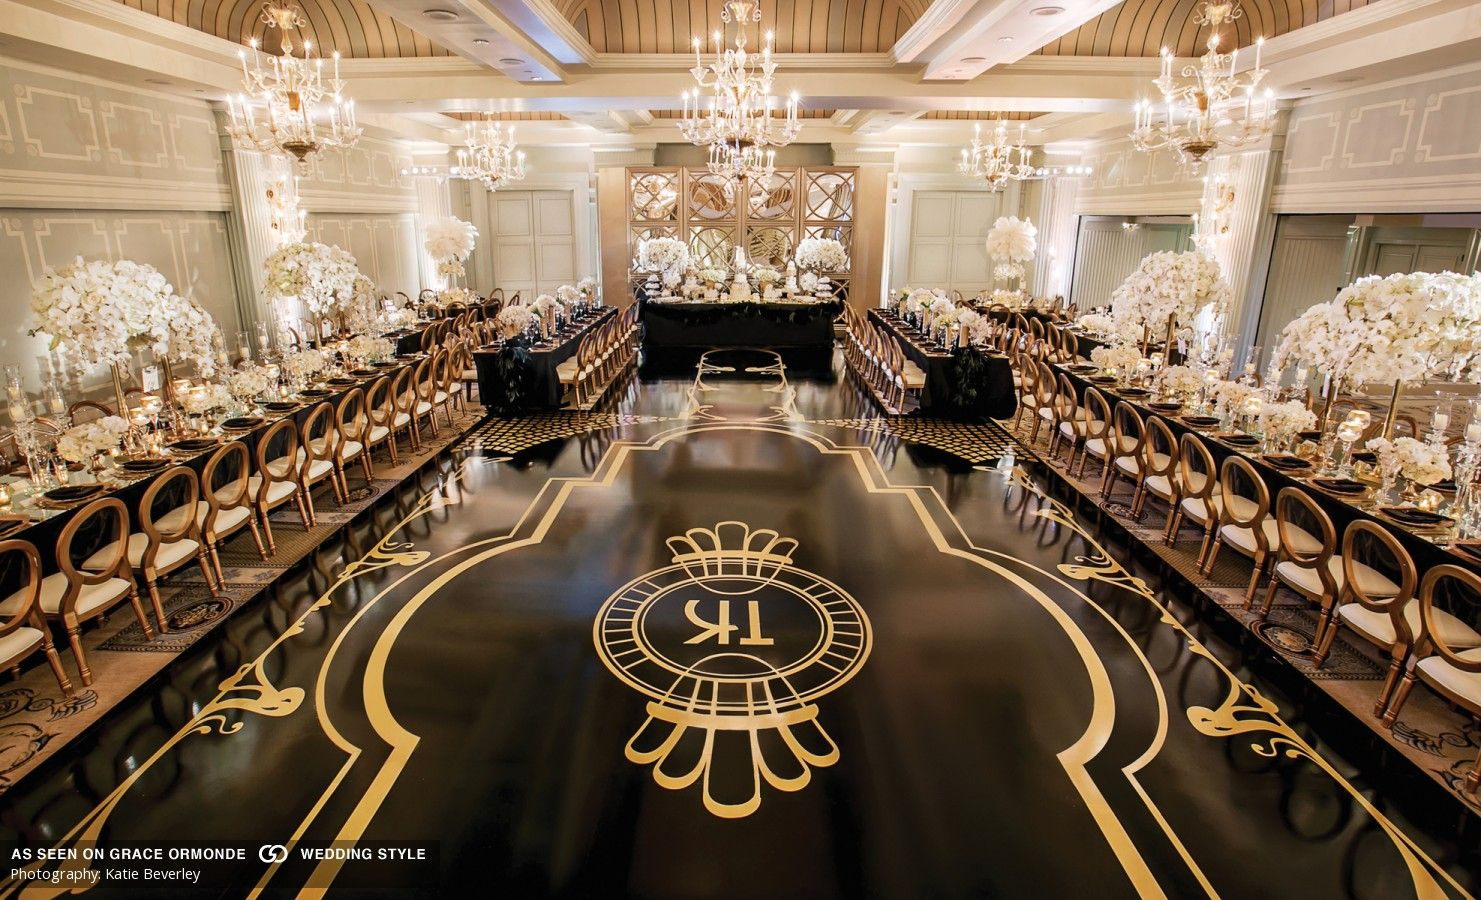 Great Gatsby Inspired Decor In Black White And Gold Hues Dance